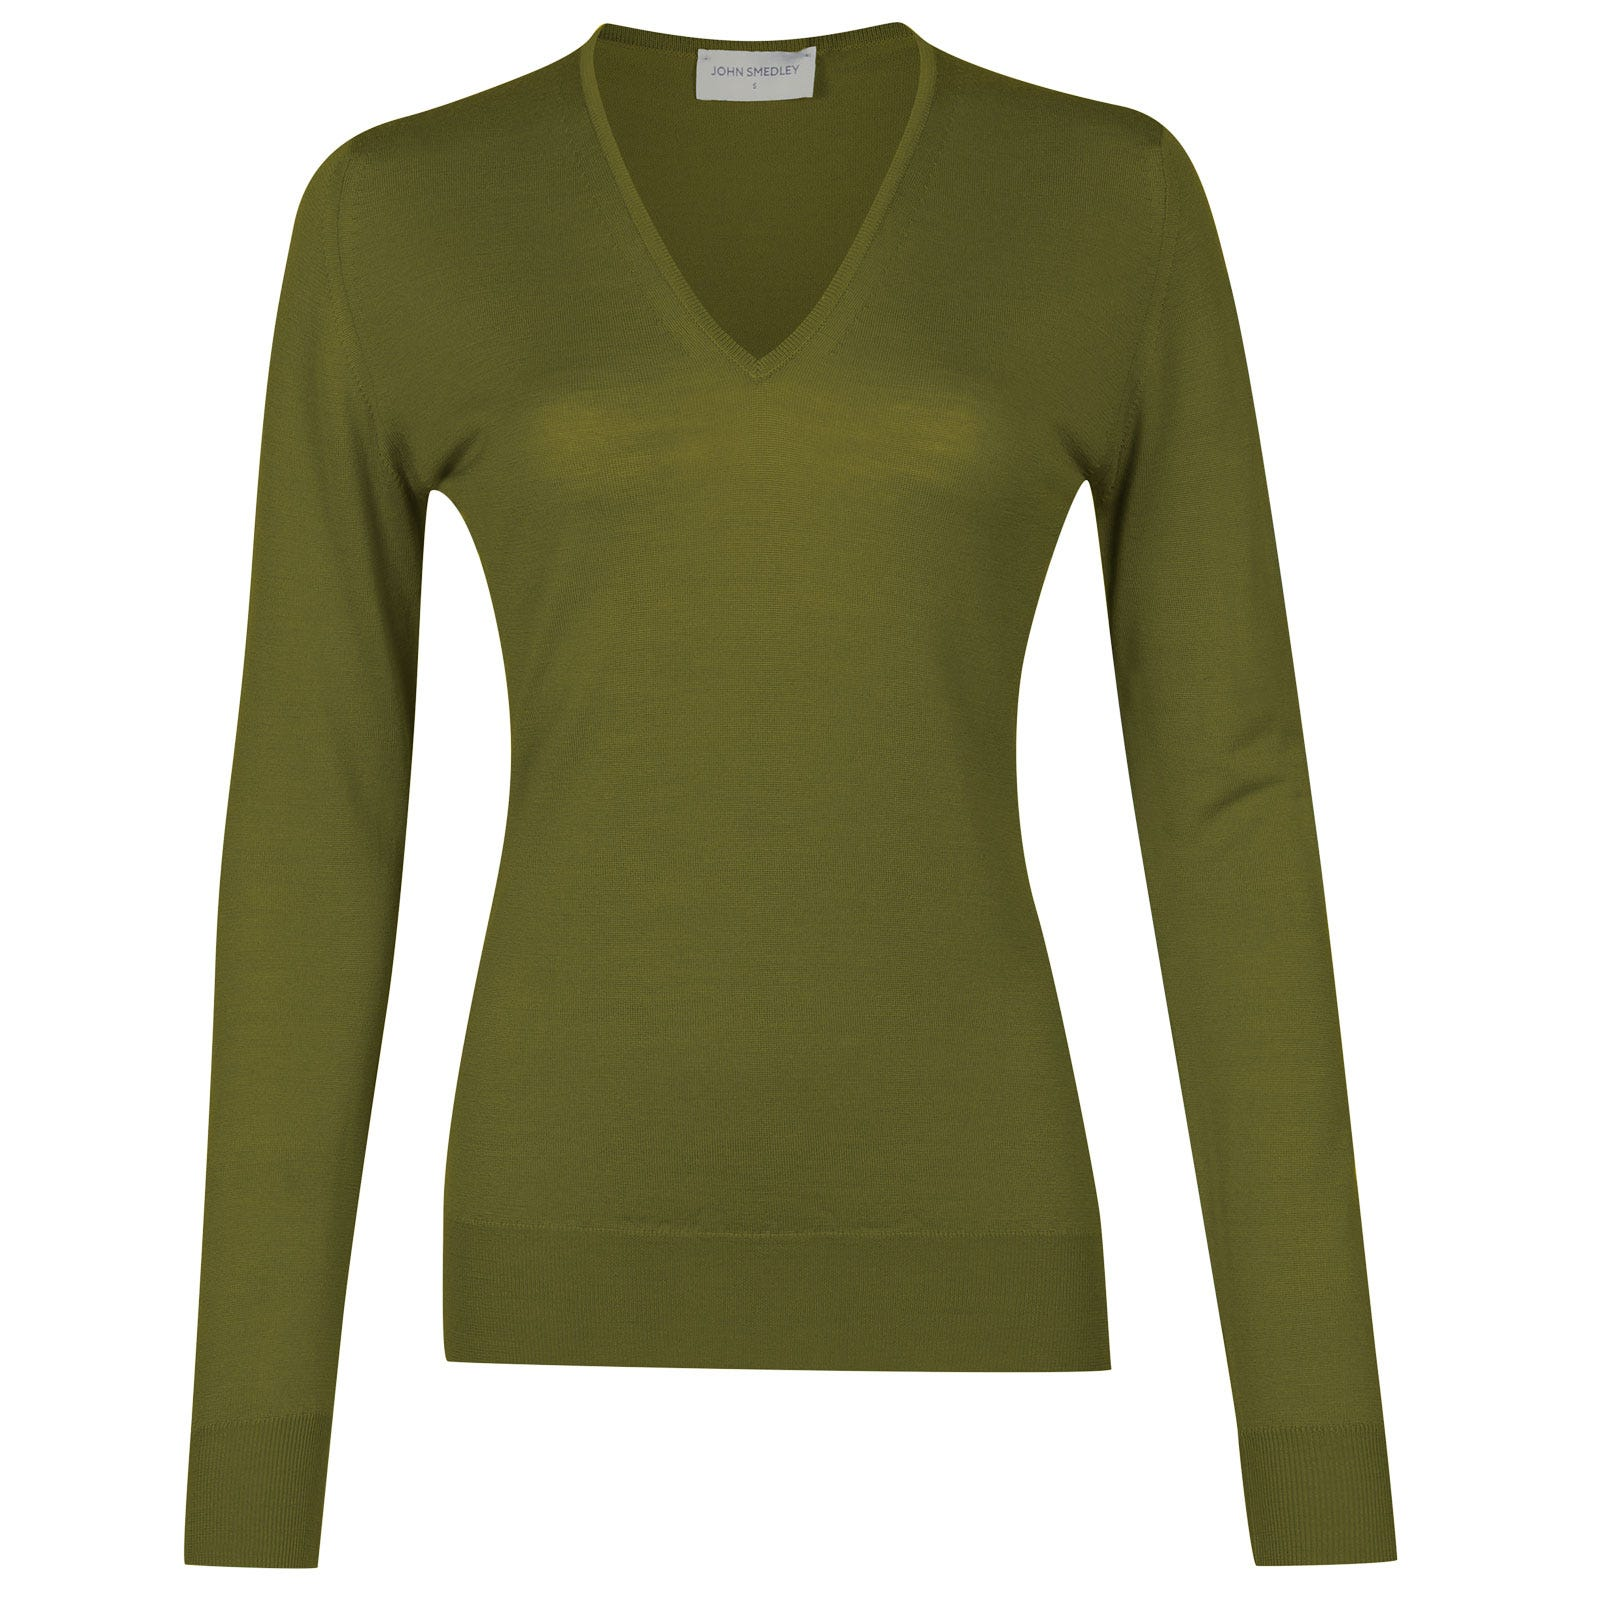 John Smedley orchid Merino Wool Sweater in Lumsdale Green-XL